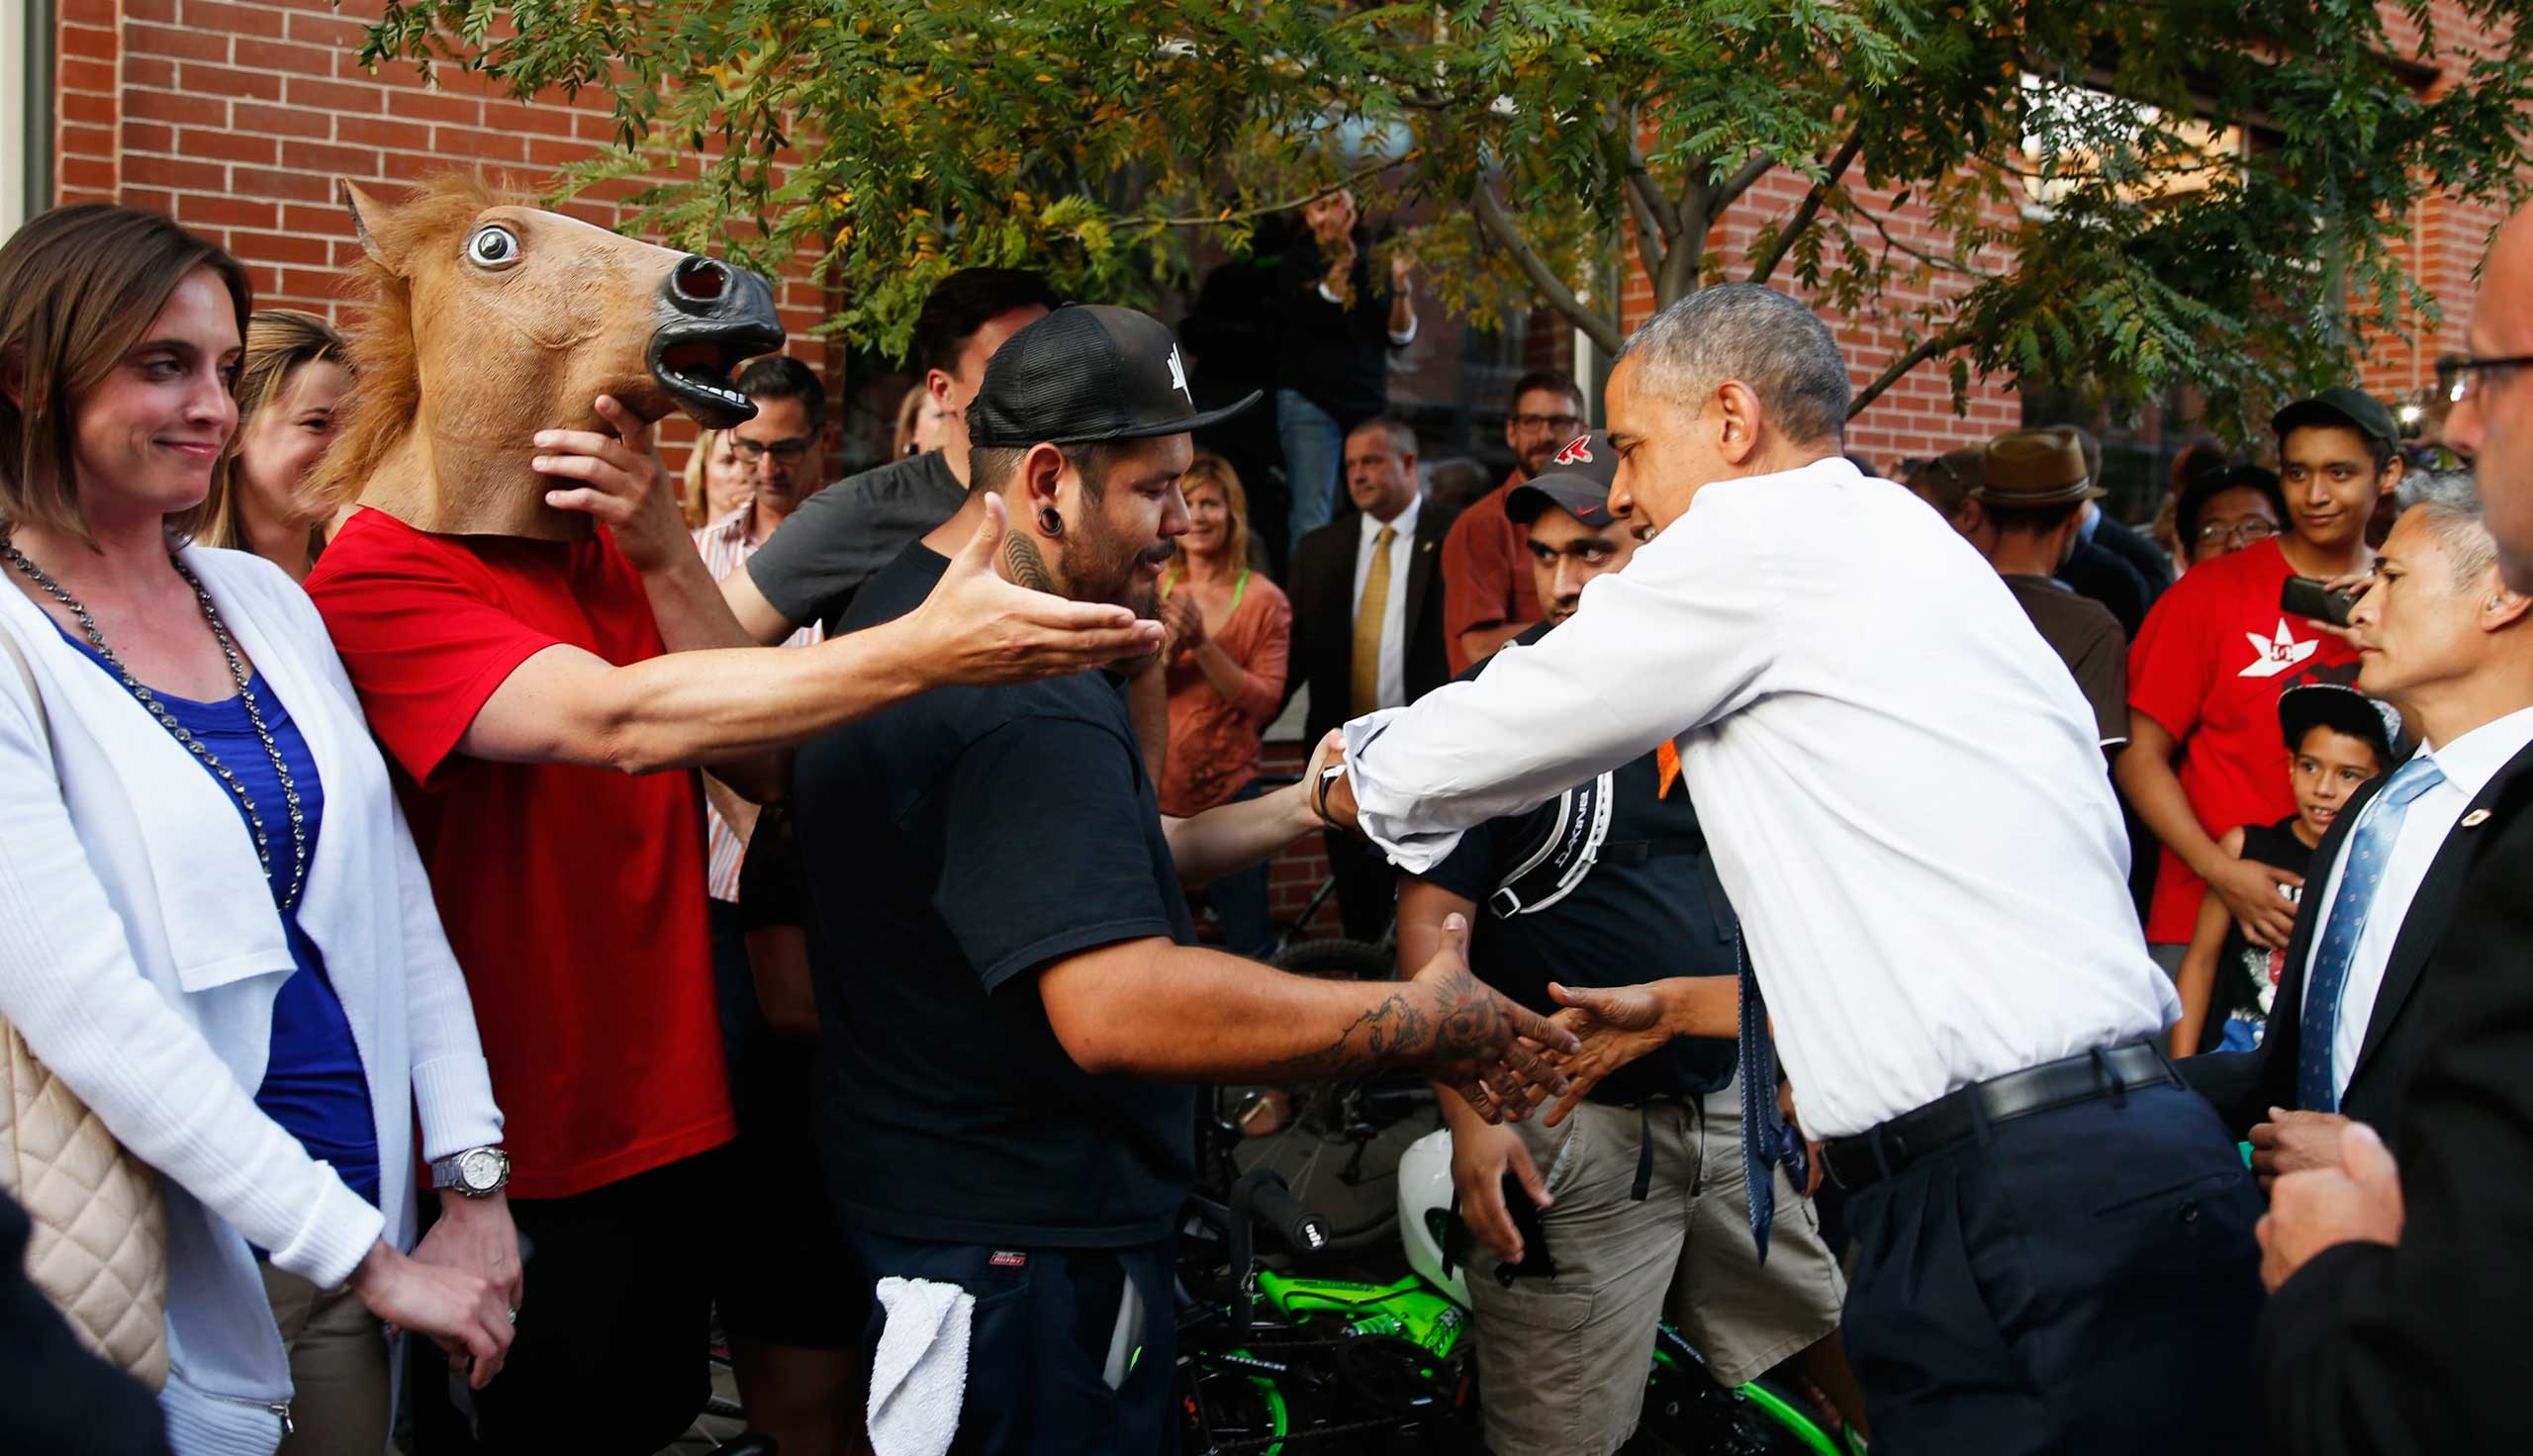 A man wearing a horse mask reaches out to shake hands with U.S. President Barack Obama during a walkabout in Denver, July 8, 2014.